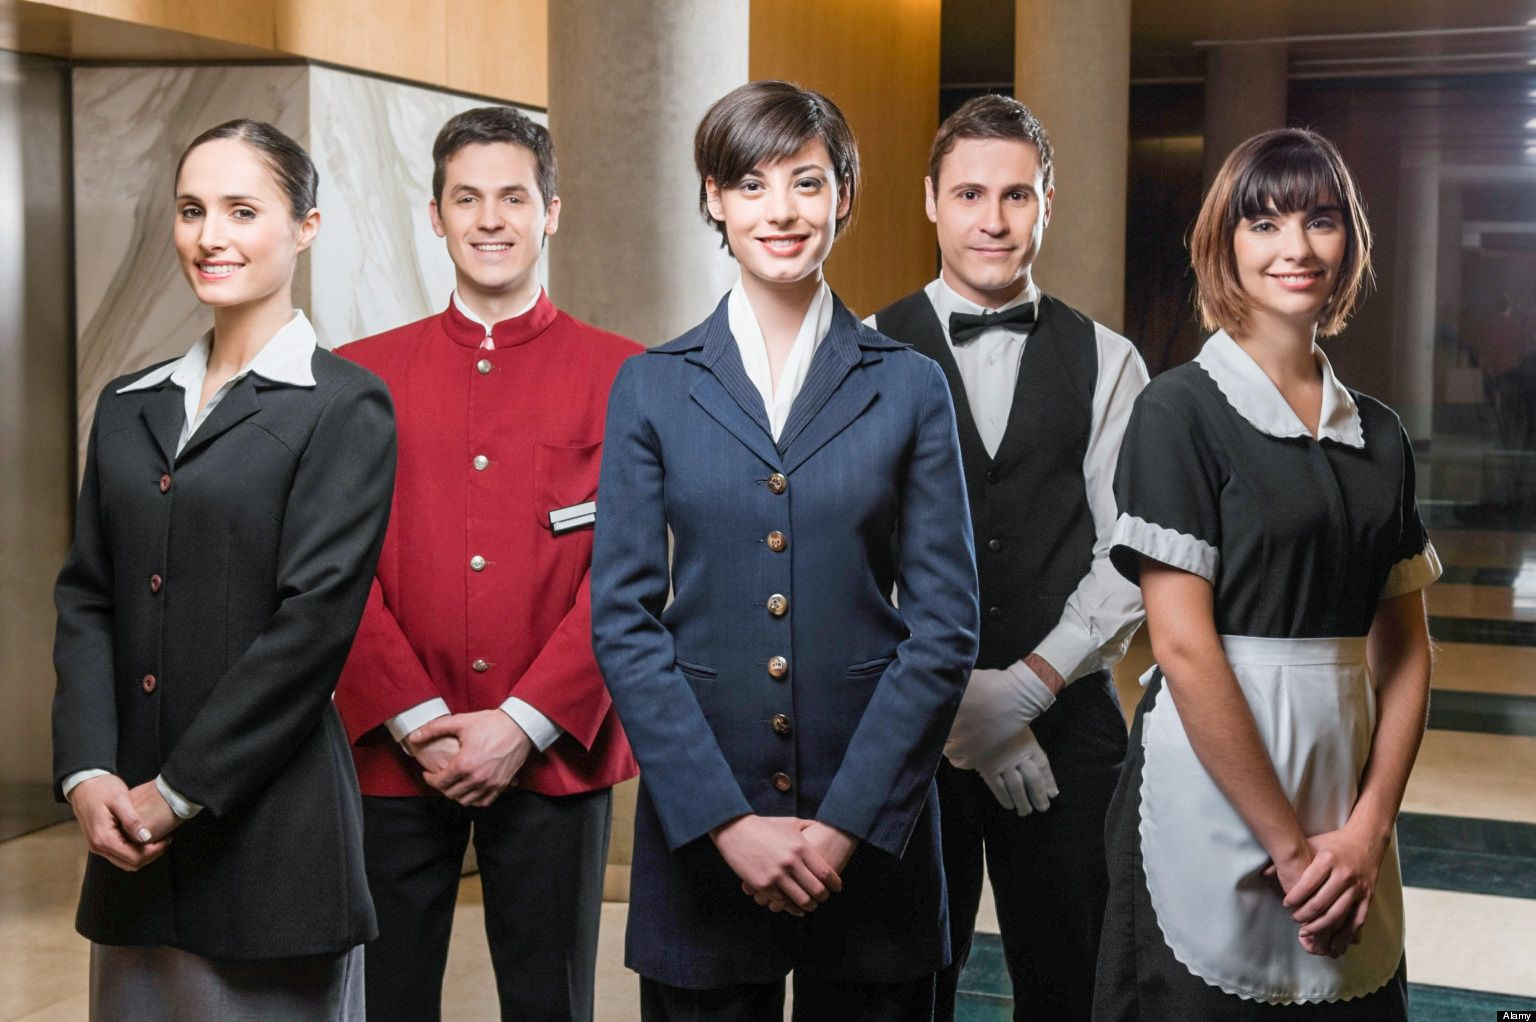 Uniforms For Hotels